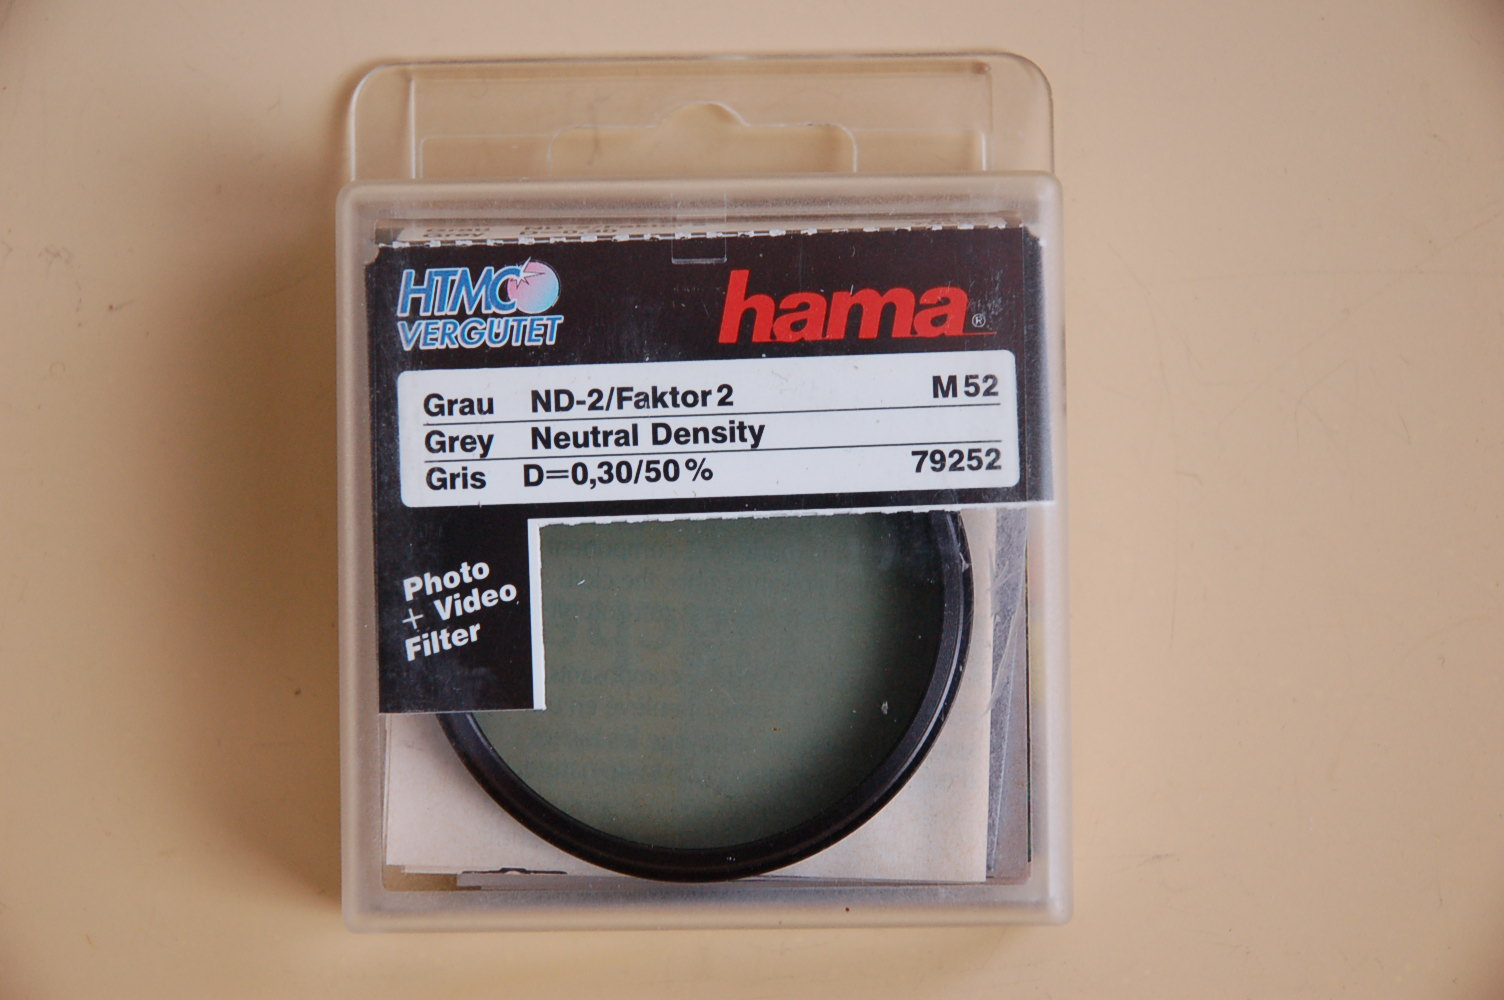 Hama Filter Grau ND-2 M52 #79252